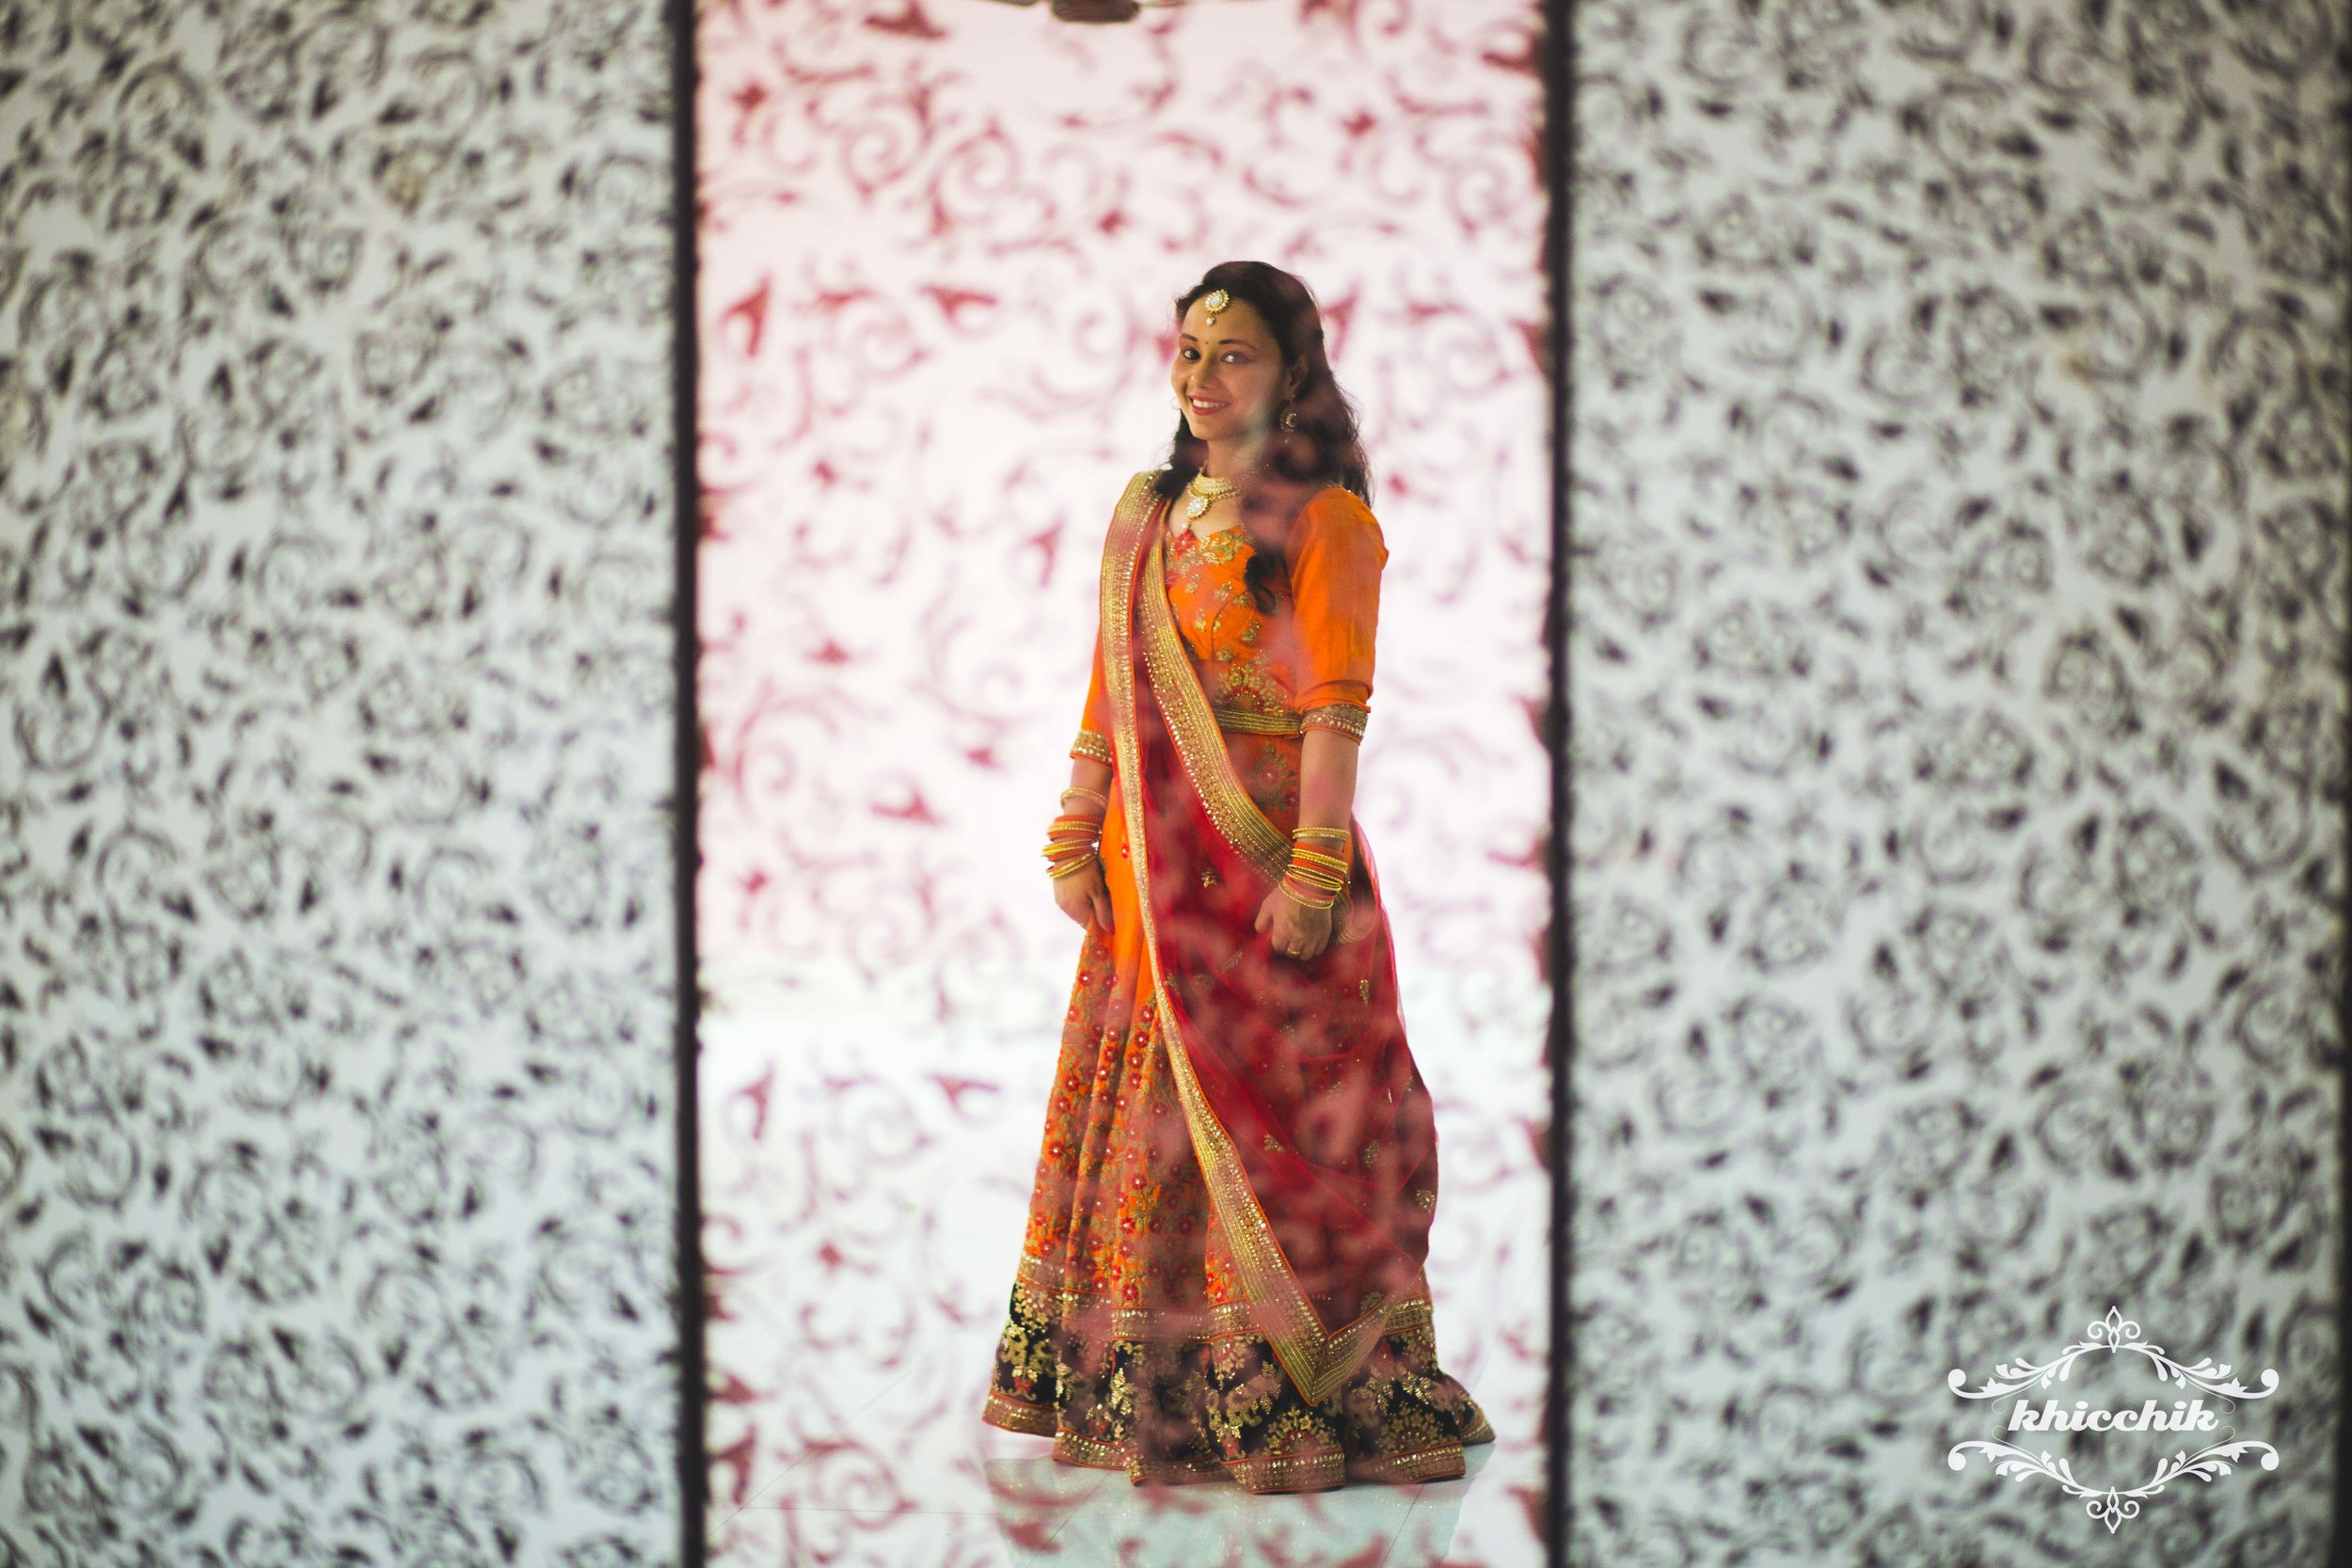 Love this portrait of Manika which I managed to make in one of the empty halls of the venue.